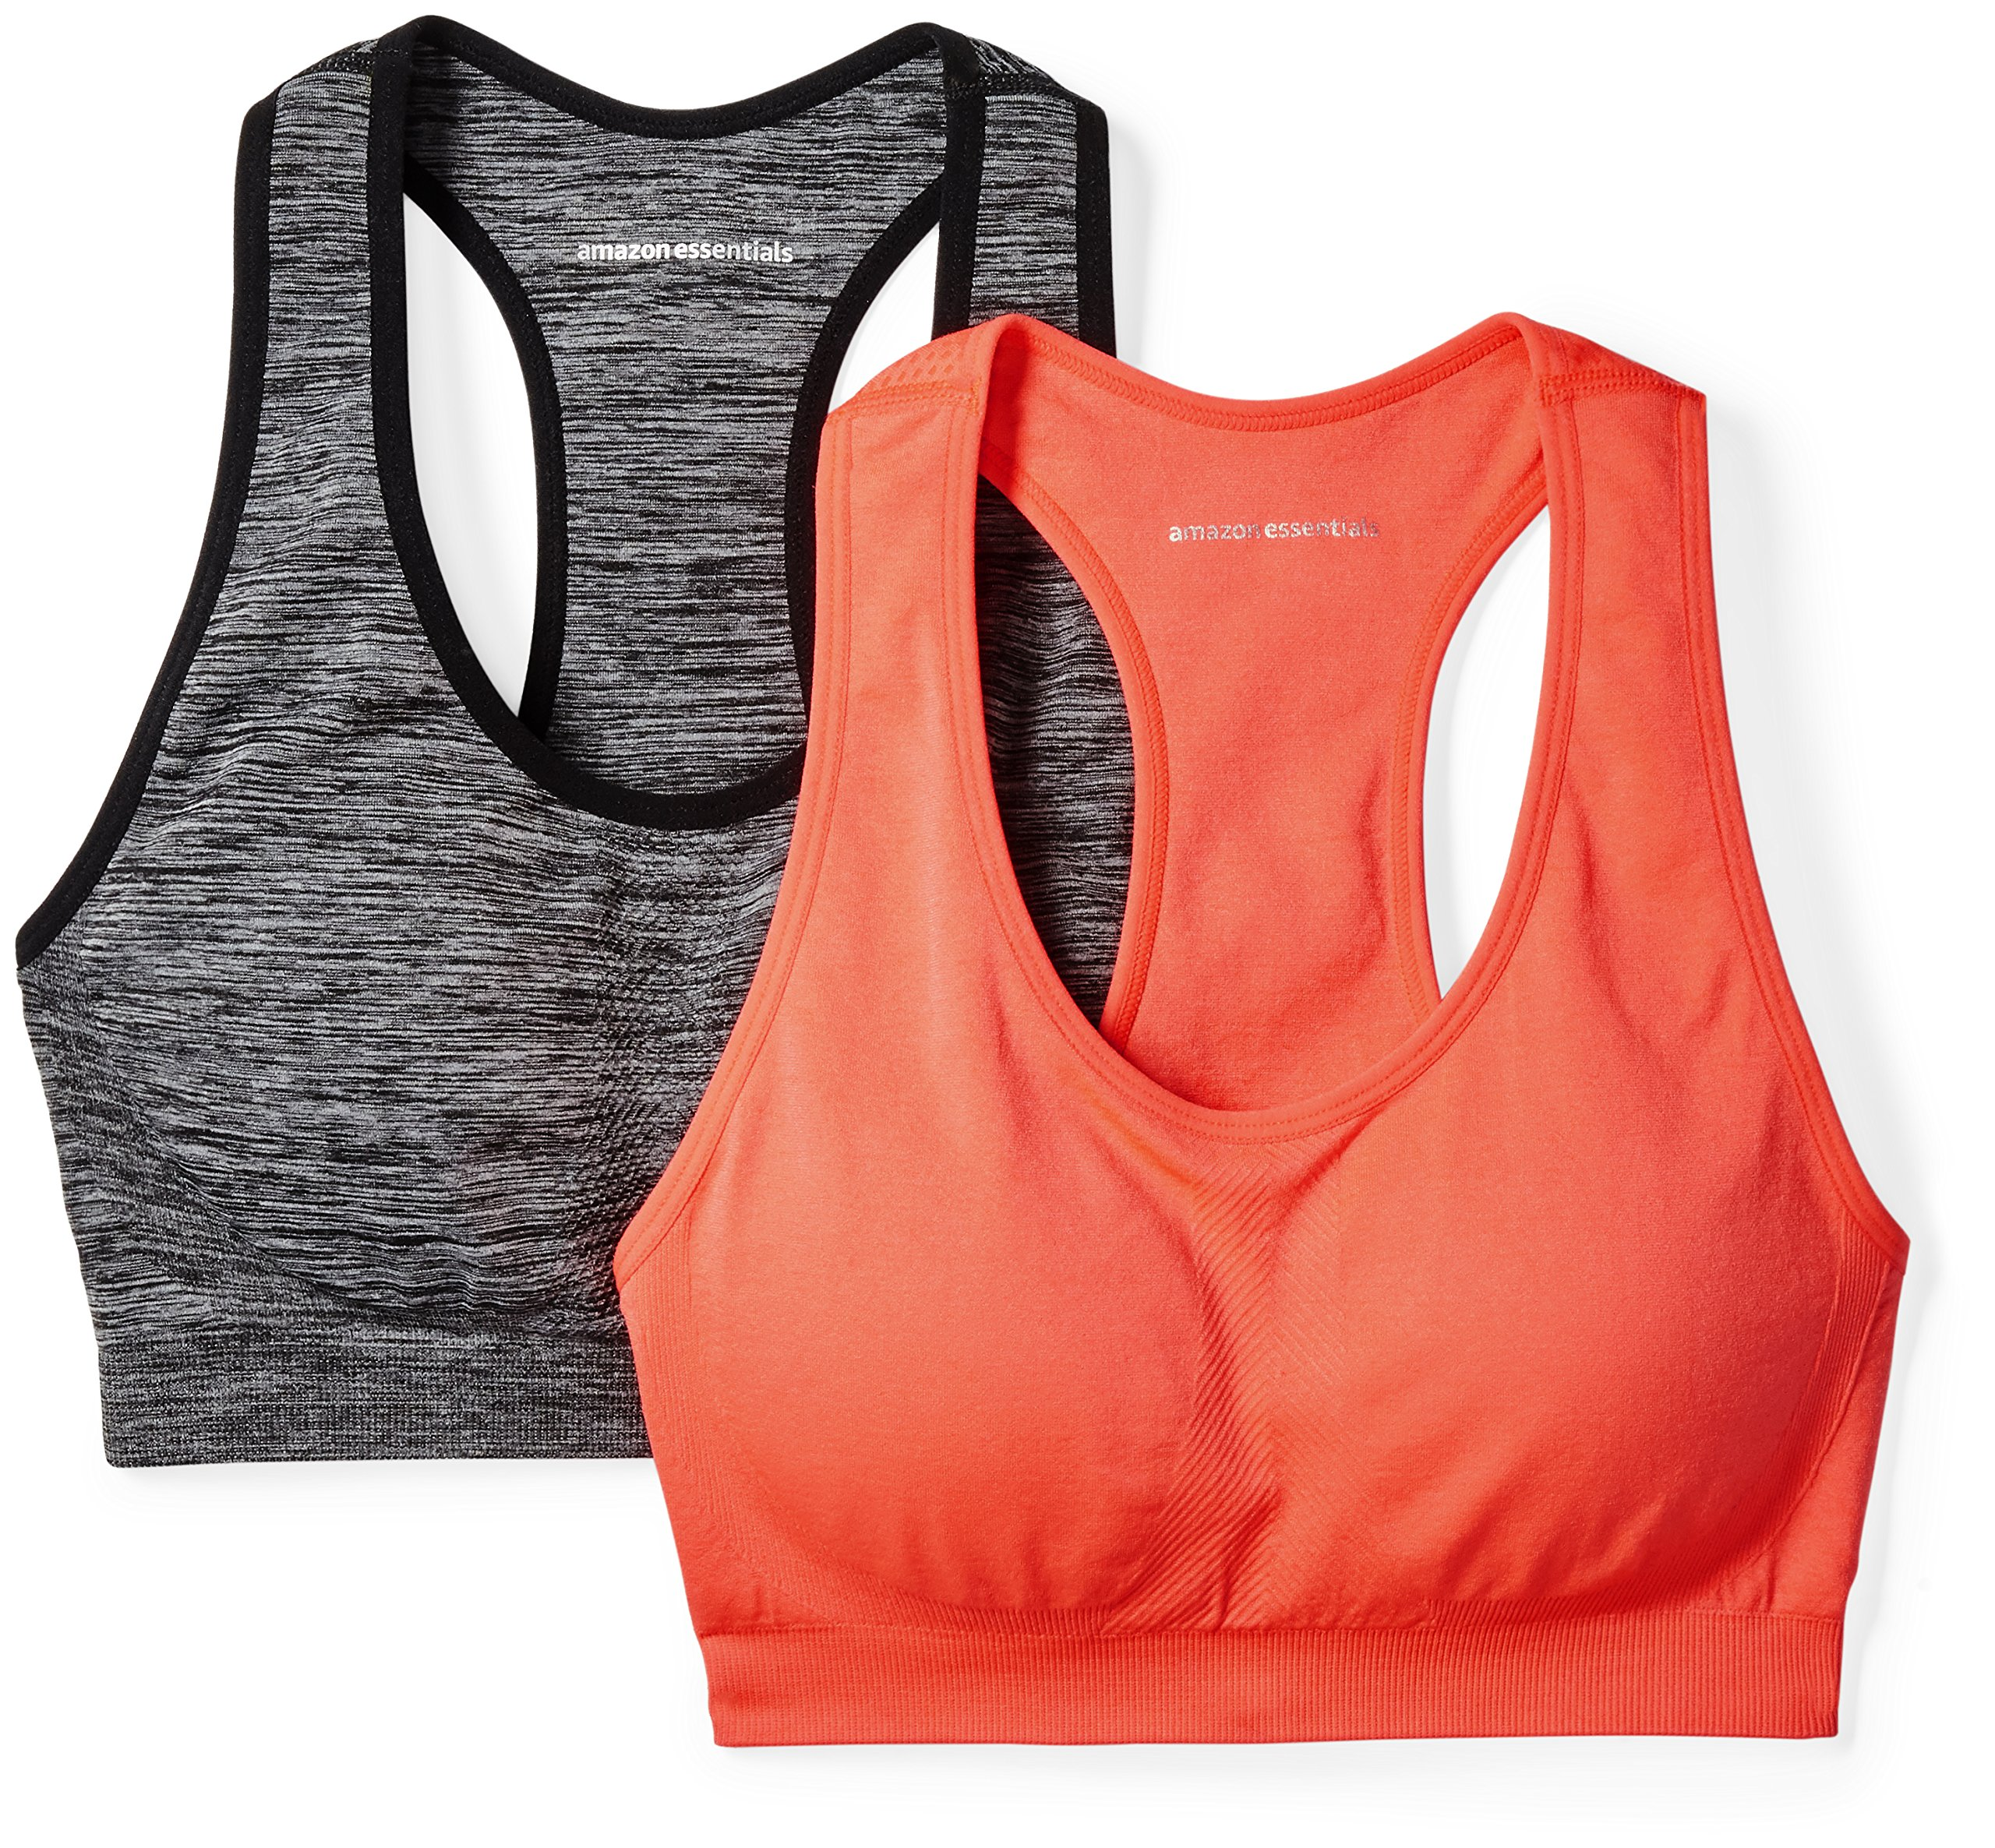 Amazon Essentials Women's 2-Pack Light Support Seamless Sports Bras, Black Space Dye/Fiery Coral, Small